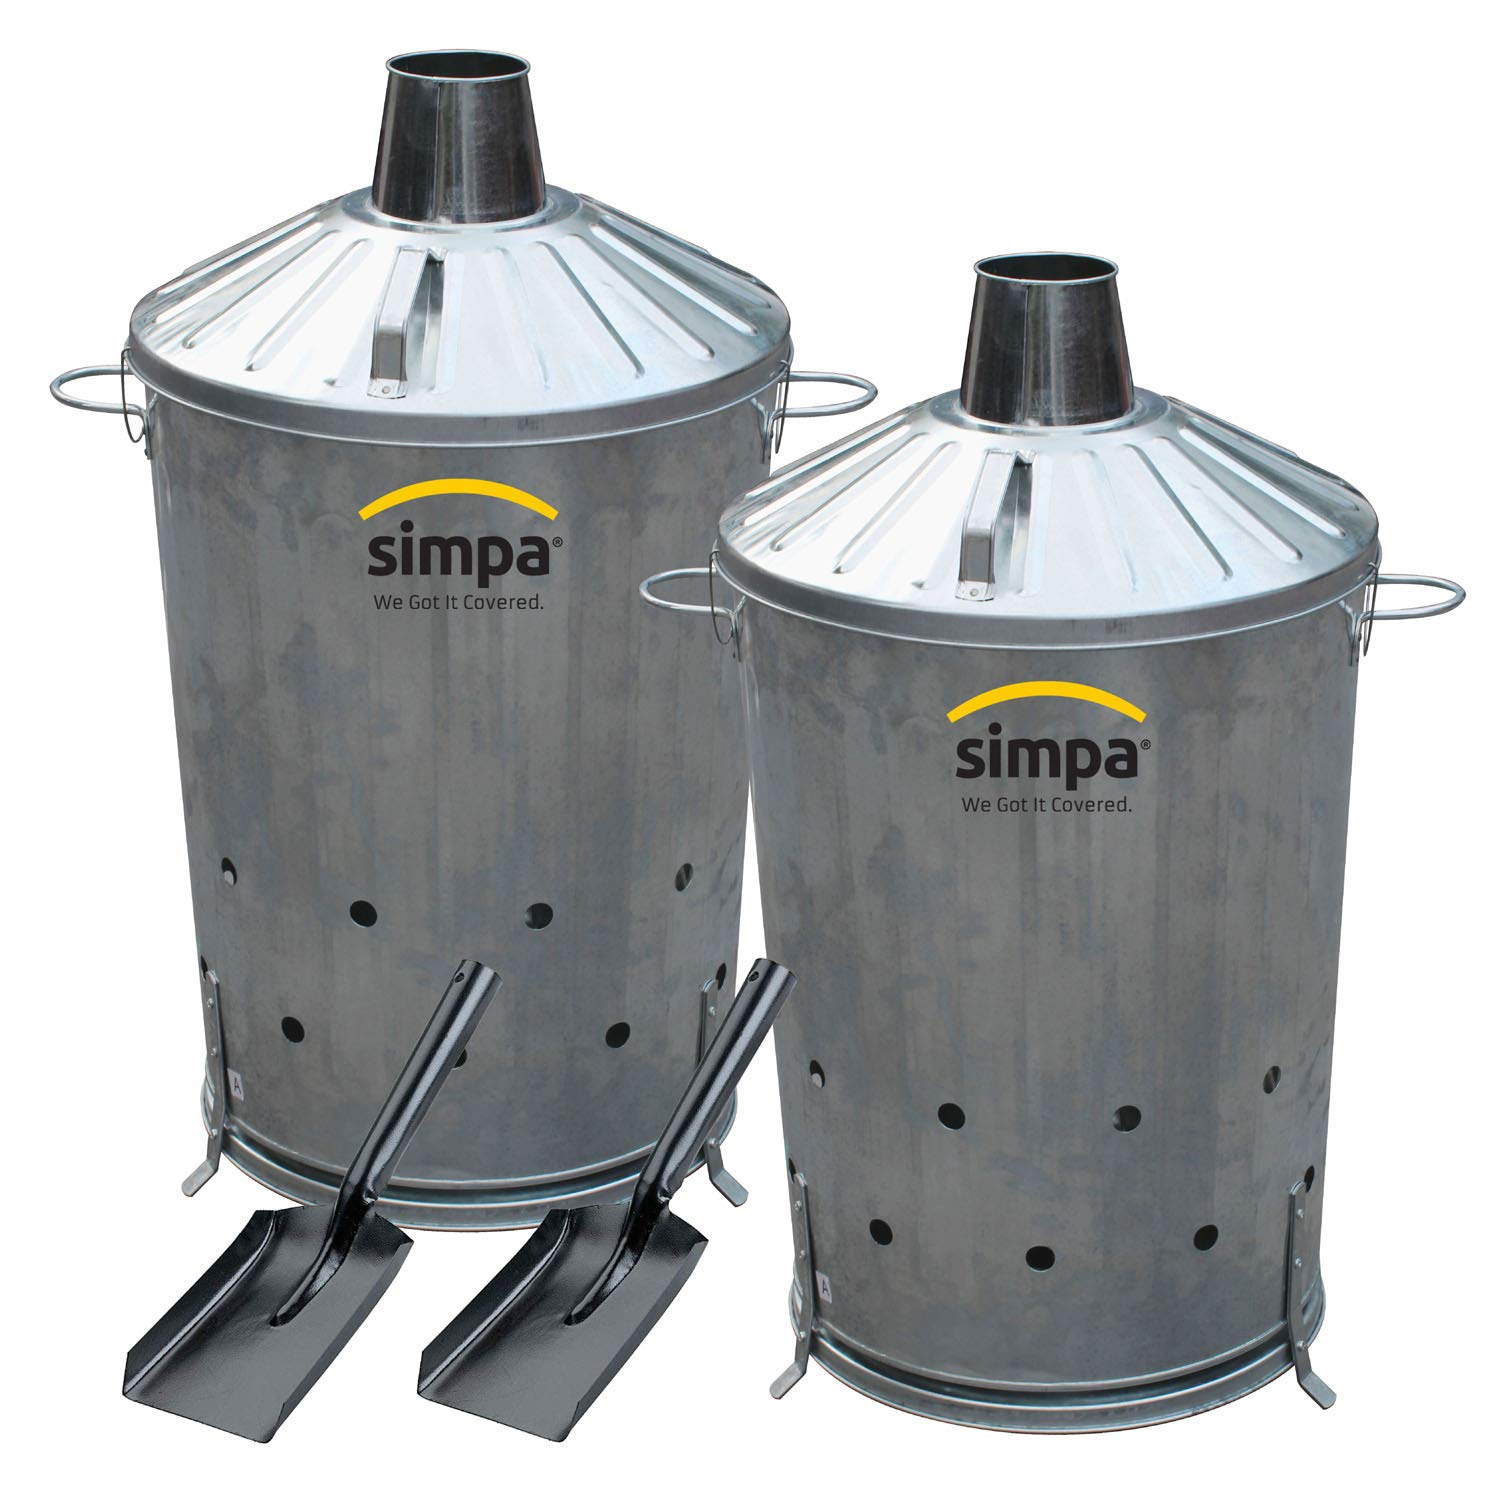 simpa 90L 90 Litre Large CENTRE DRAFT Galvanised Metal Incinerator Fire Burning Bin with Special Locking Lid - Greater ventilation for rapid burn.